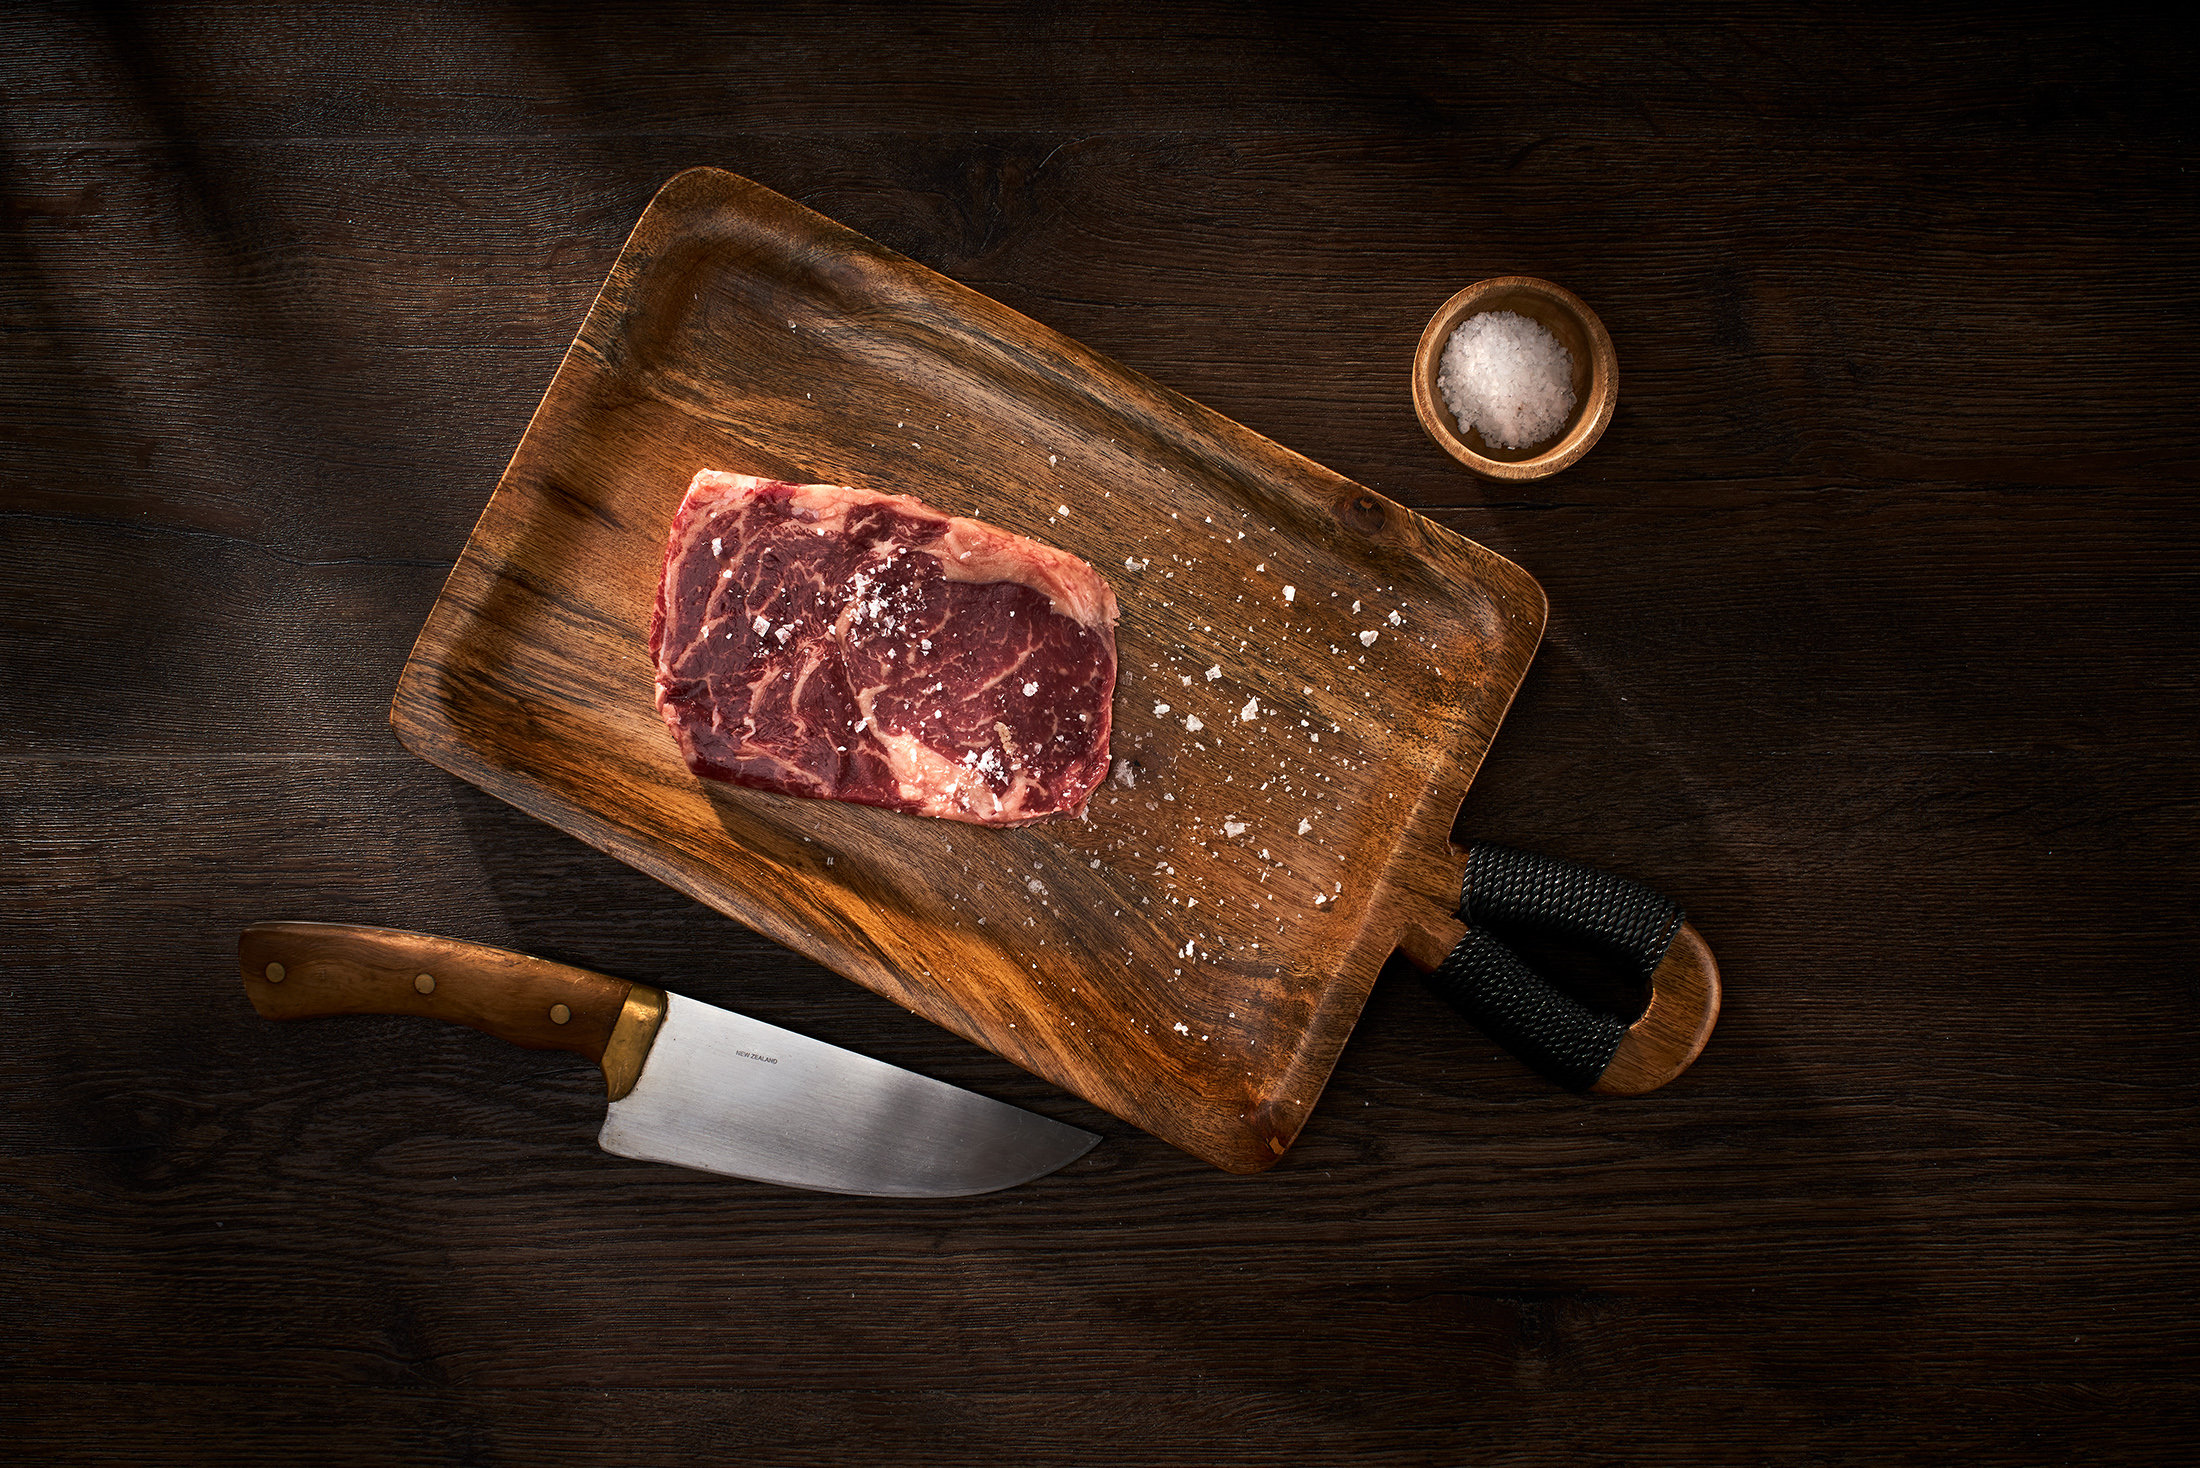 Heart health in men unaffected by eating 100% grass-fed Wagyu beef, study finds